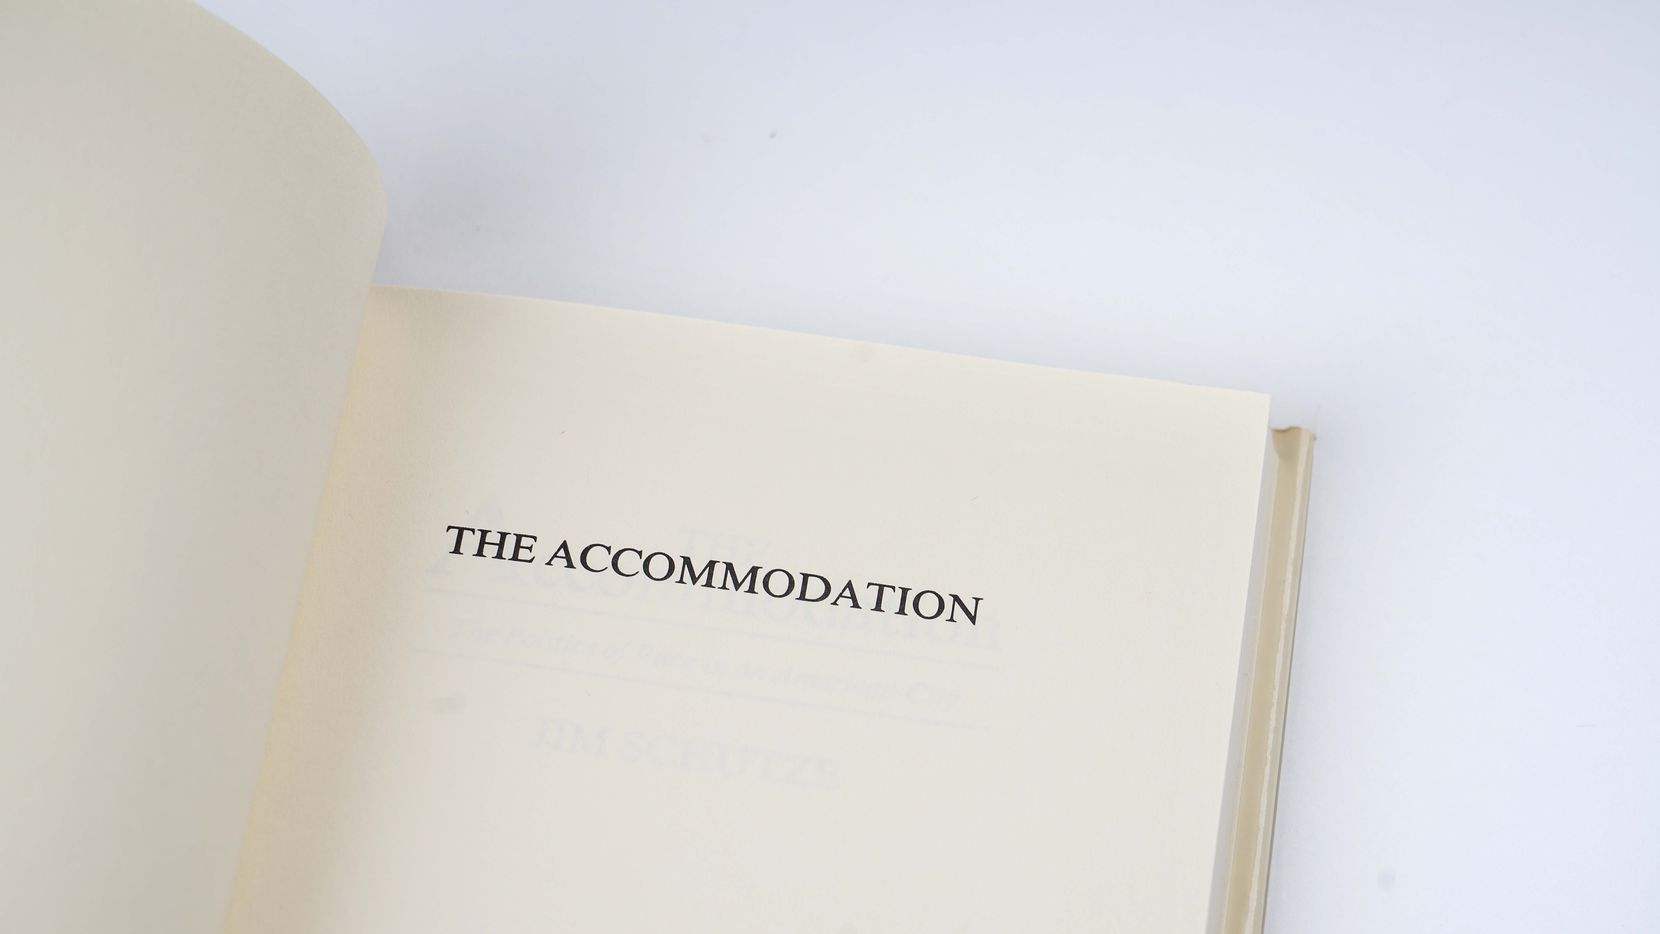 'The Accommodation,' by Jim Schutze, photographed on June 25, 2020.